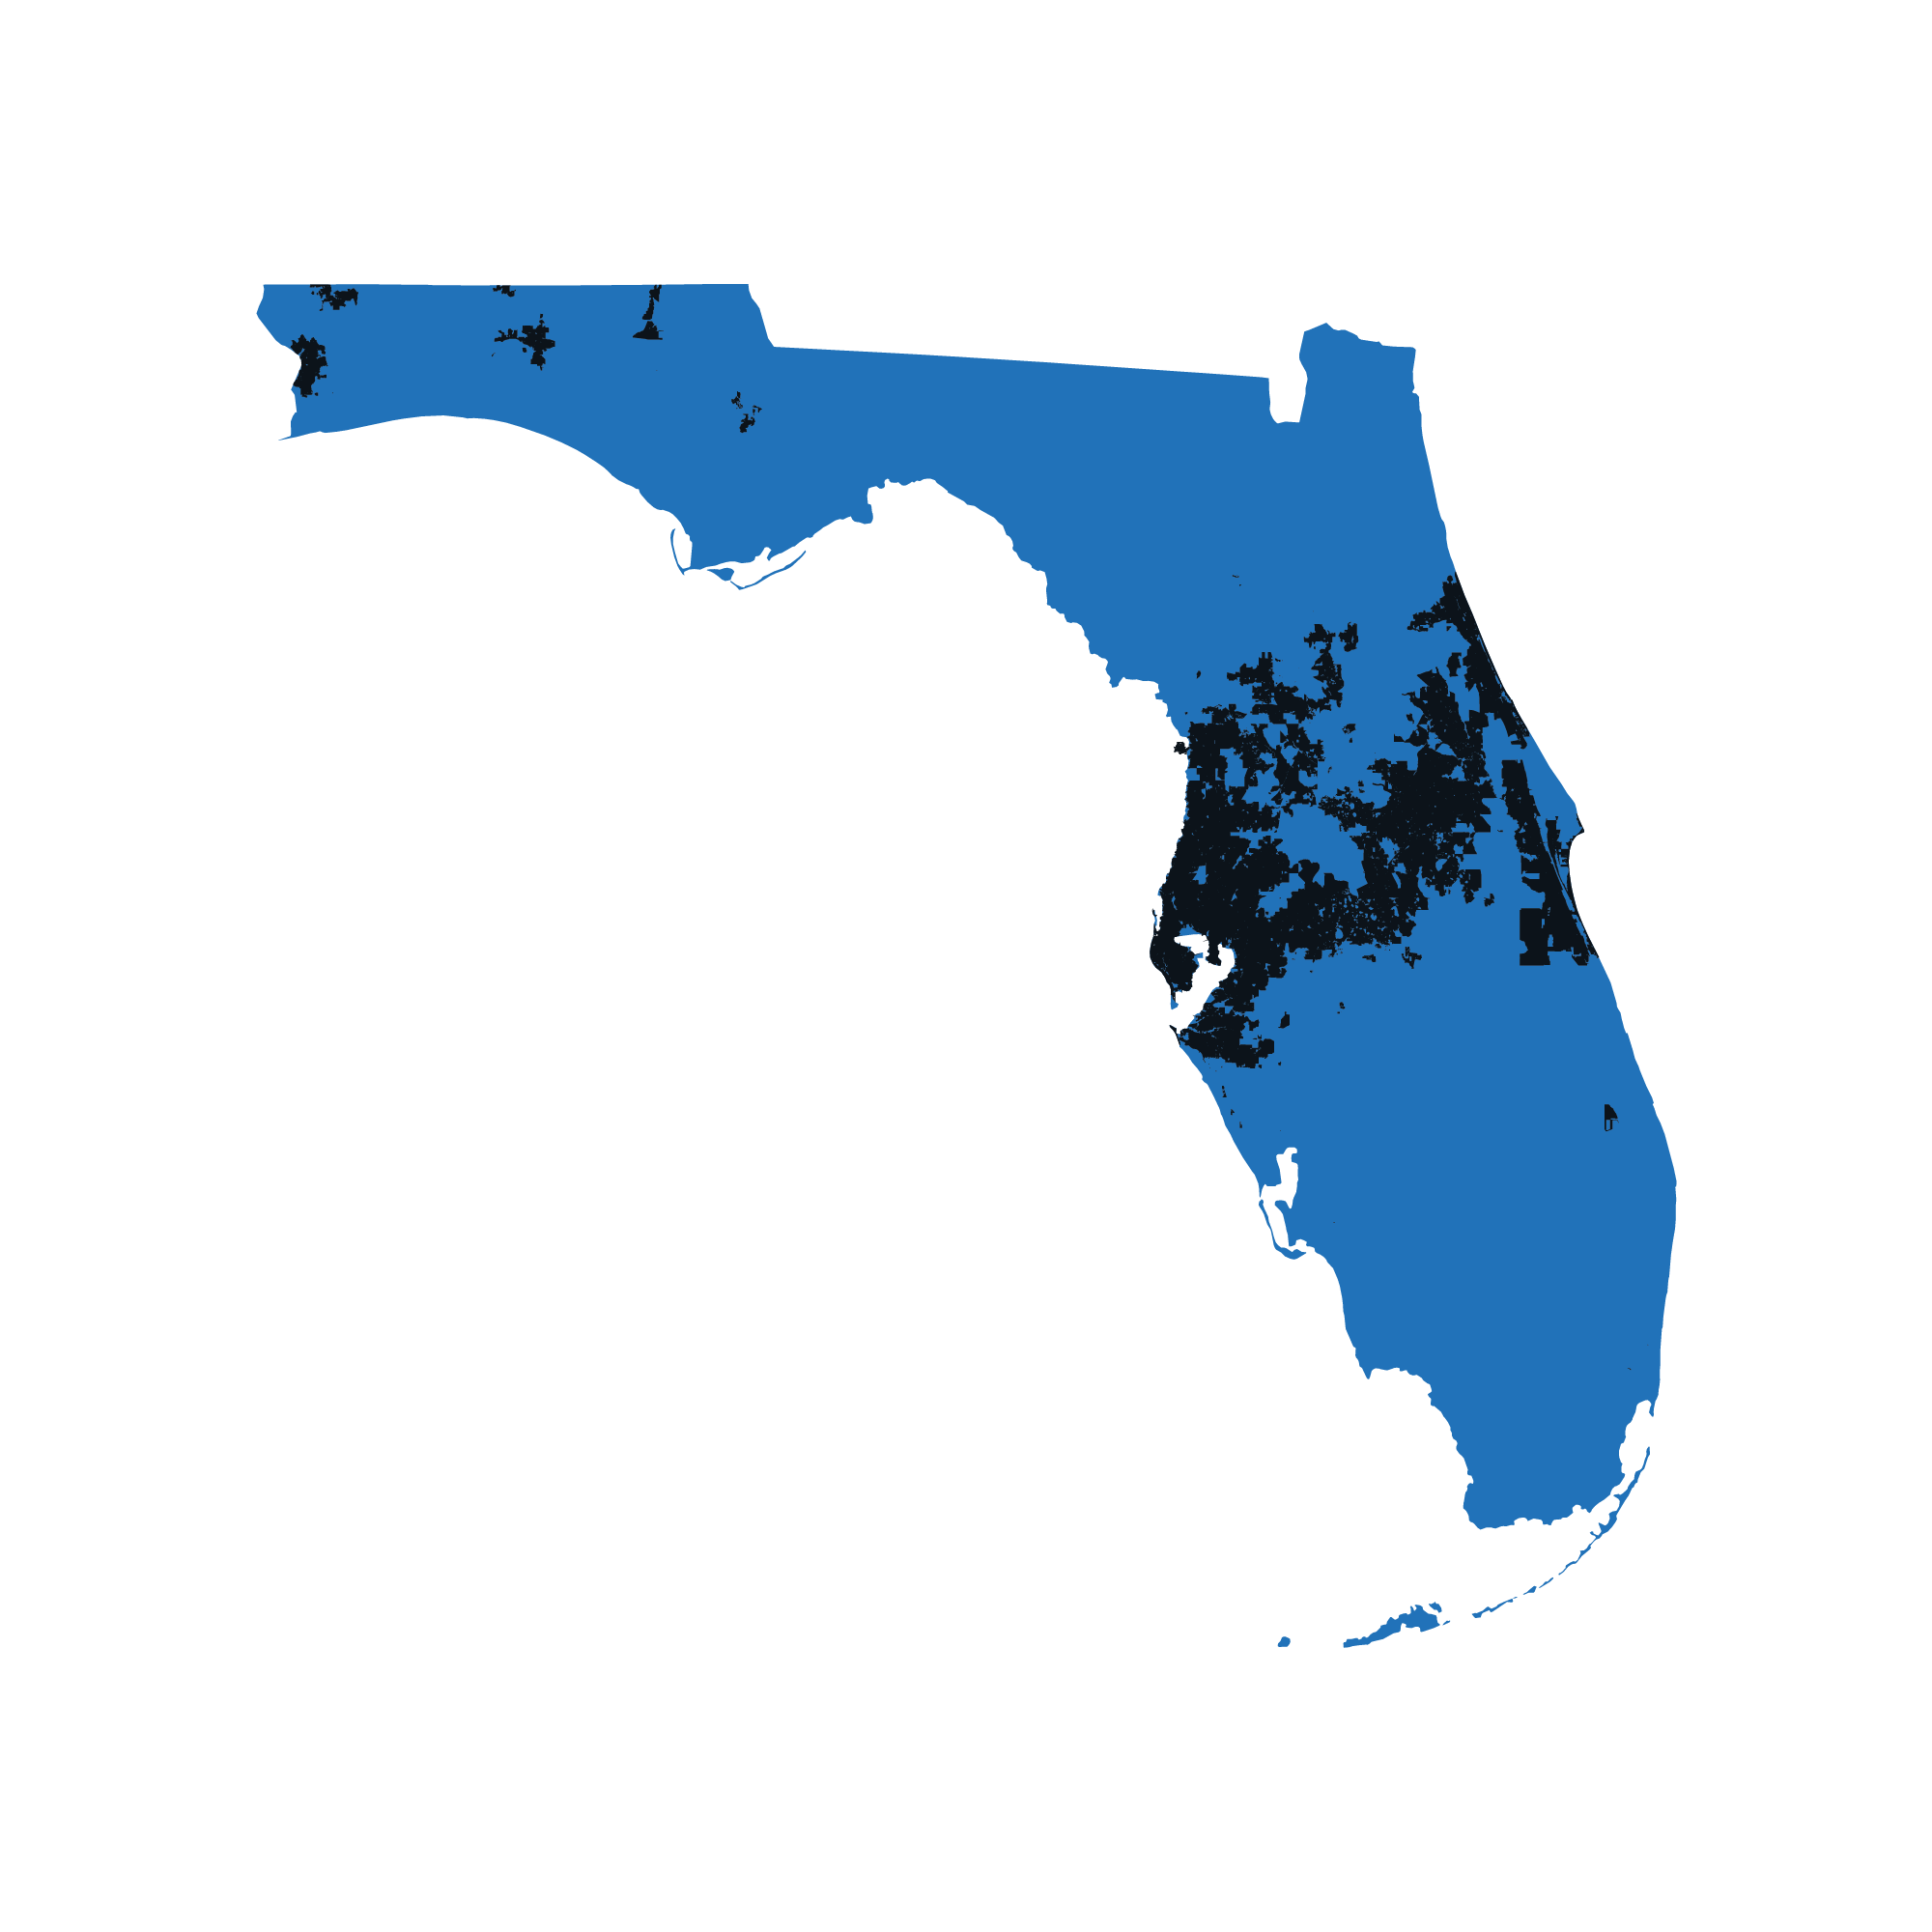 Florida map data image